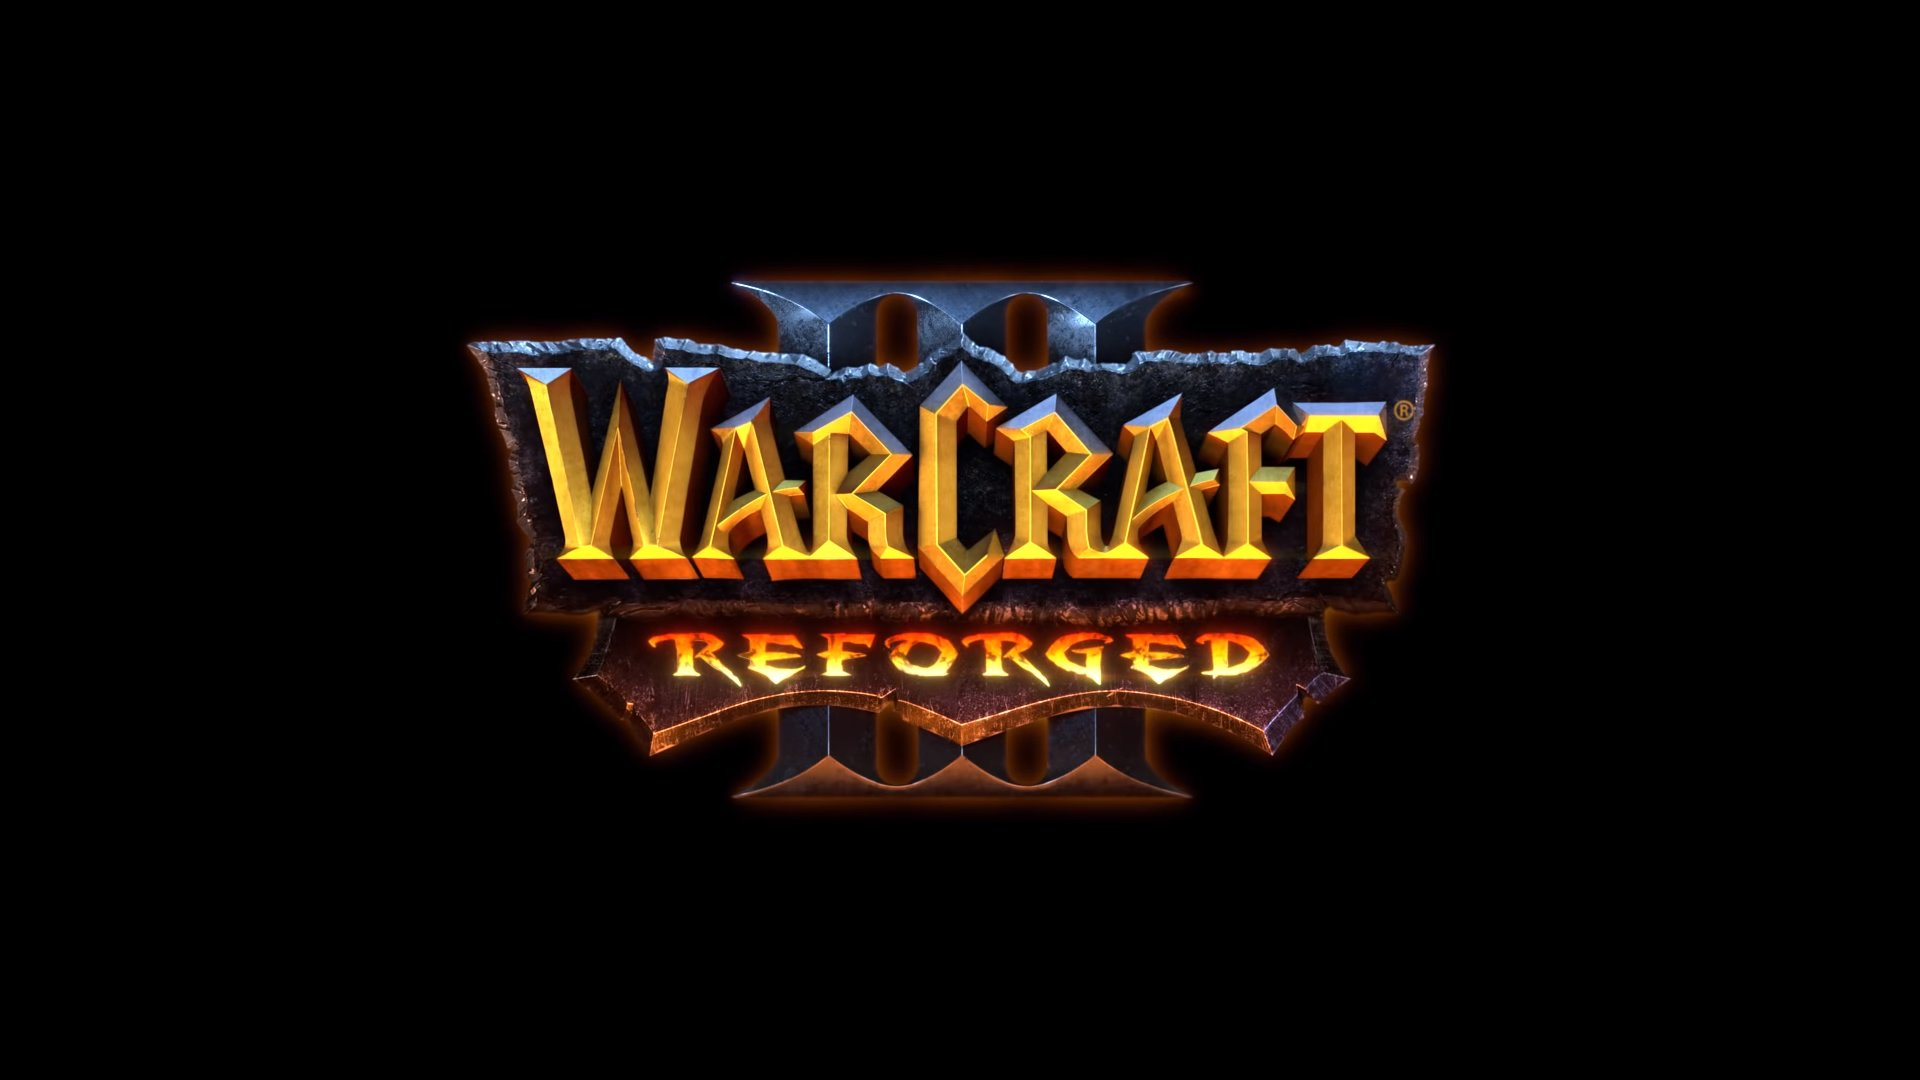 Warcraft Iii Reforged Know Your Meme